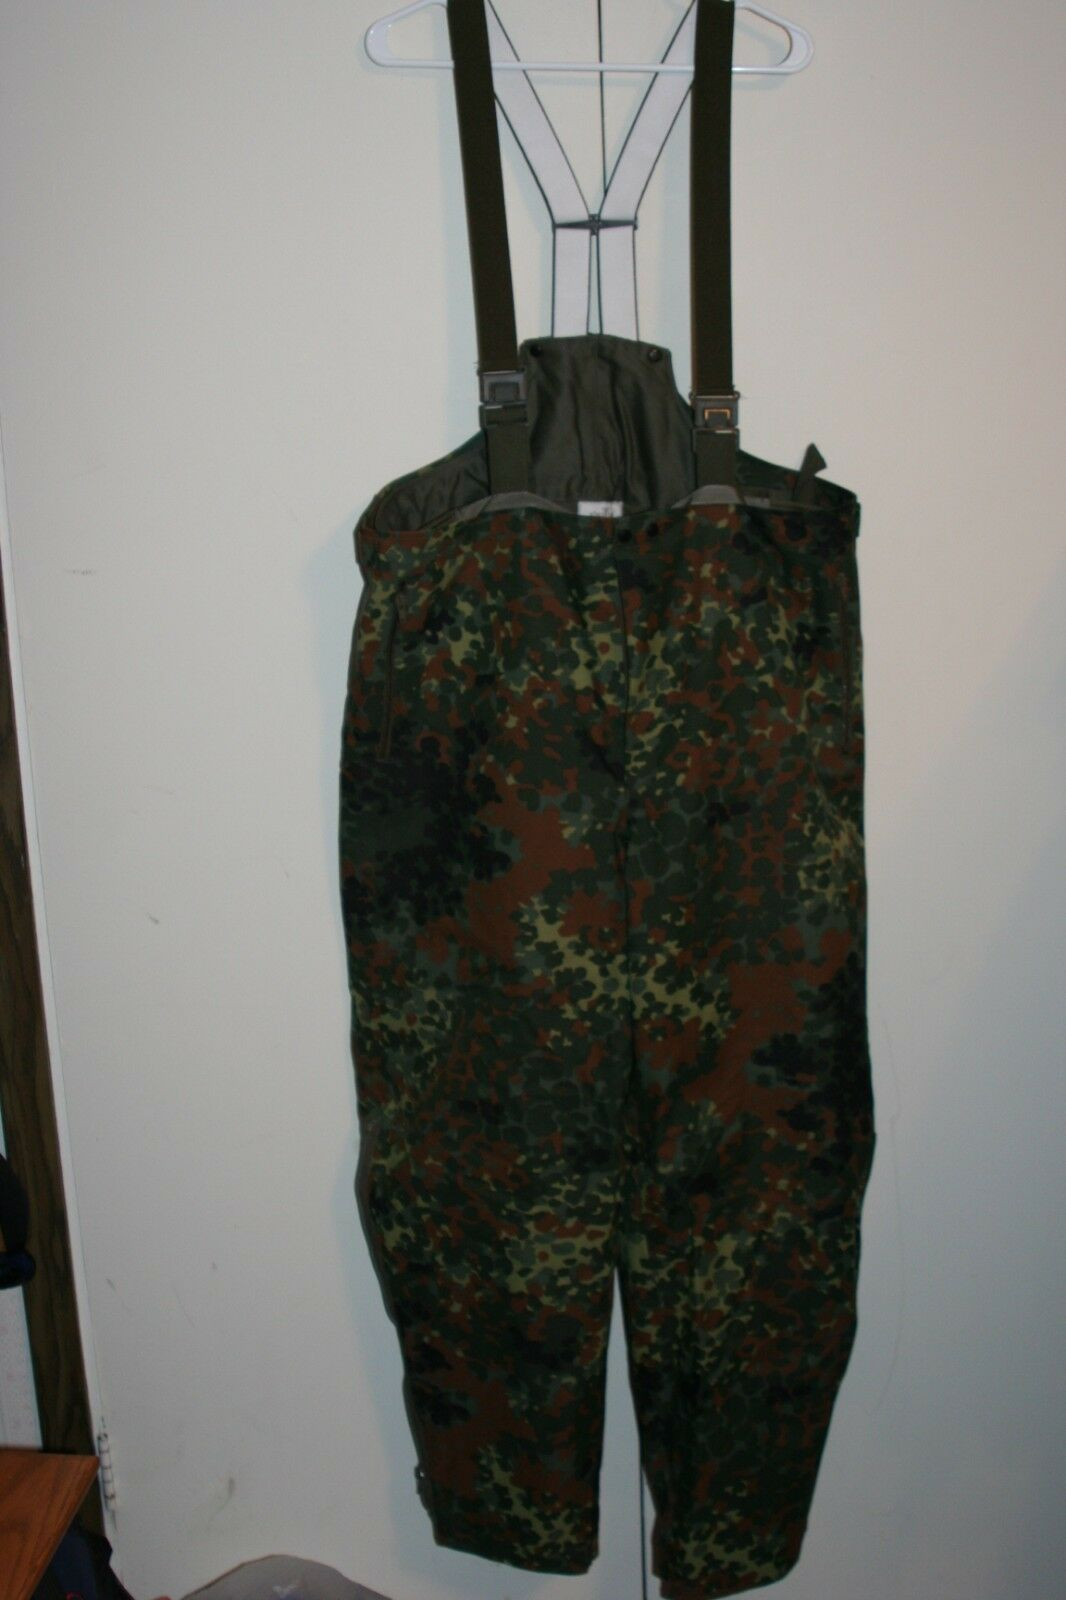 Kohler GMBH German Camo Army Winter Lined  Snow Pants Men XL 56 58 Hunt 2 In 1  clearance up to 70%